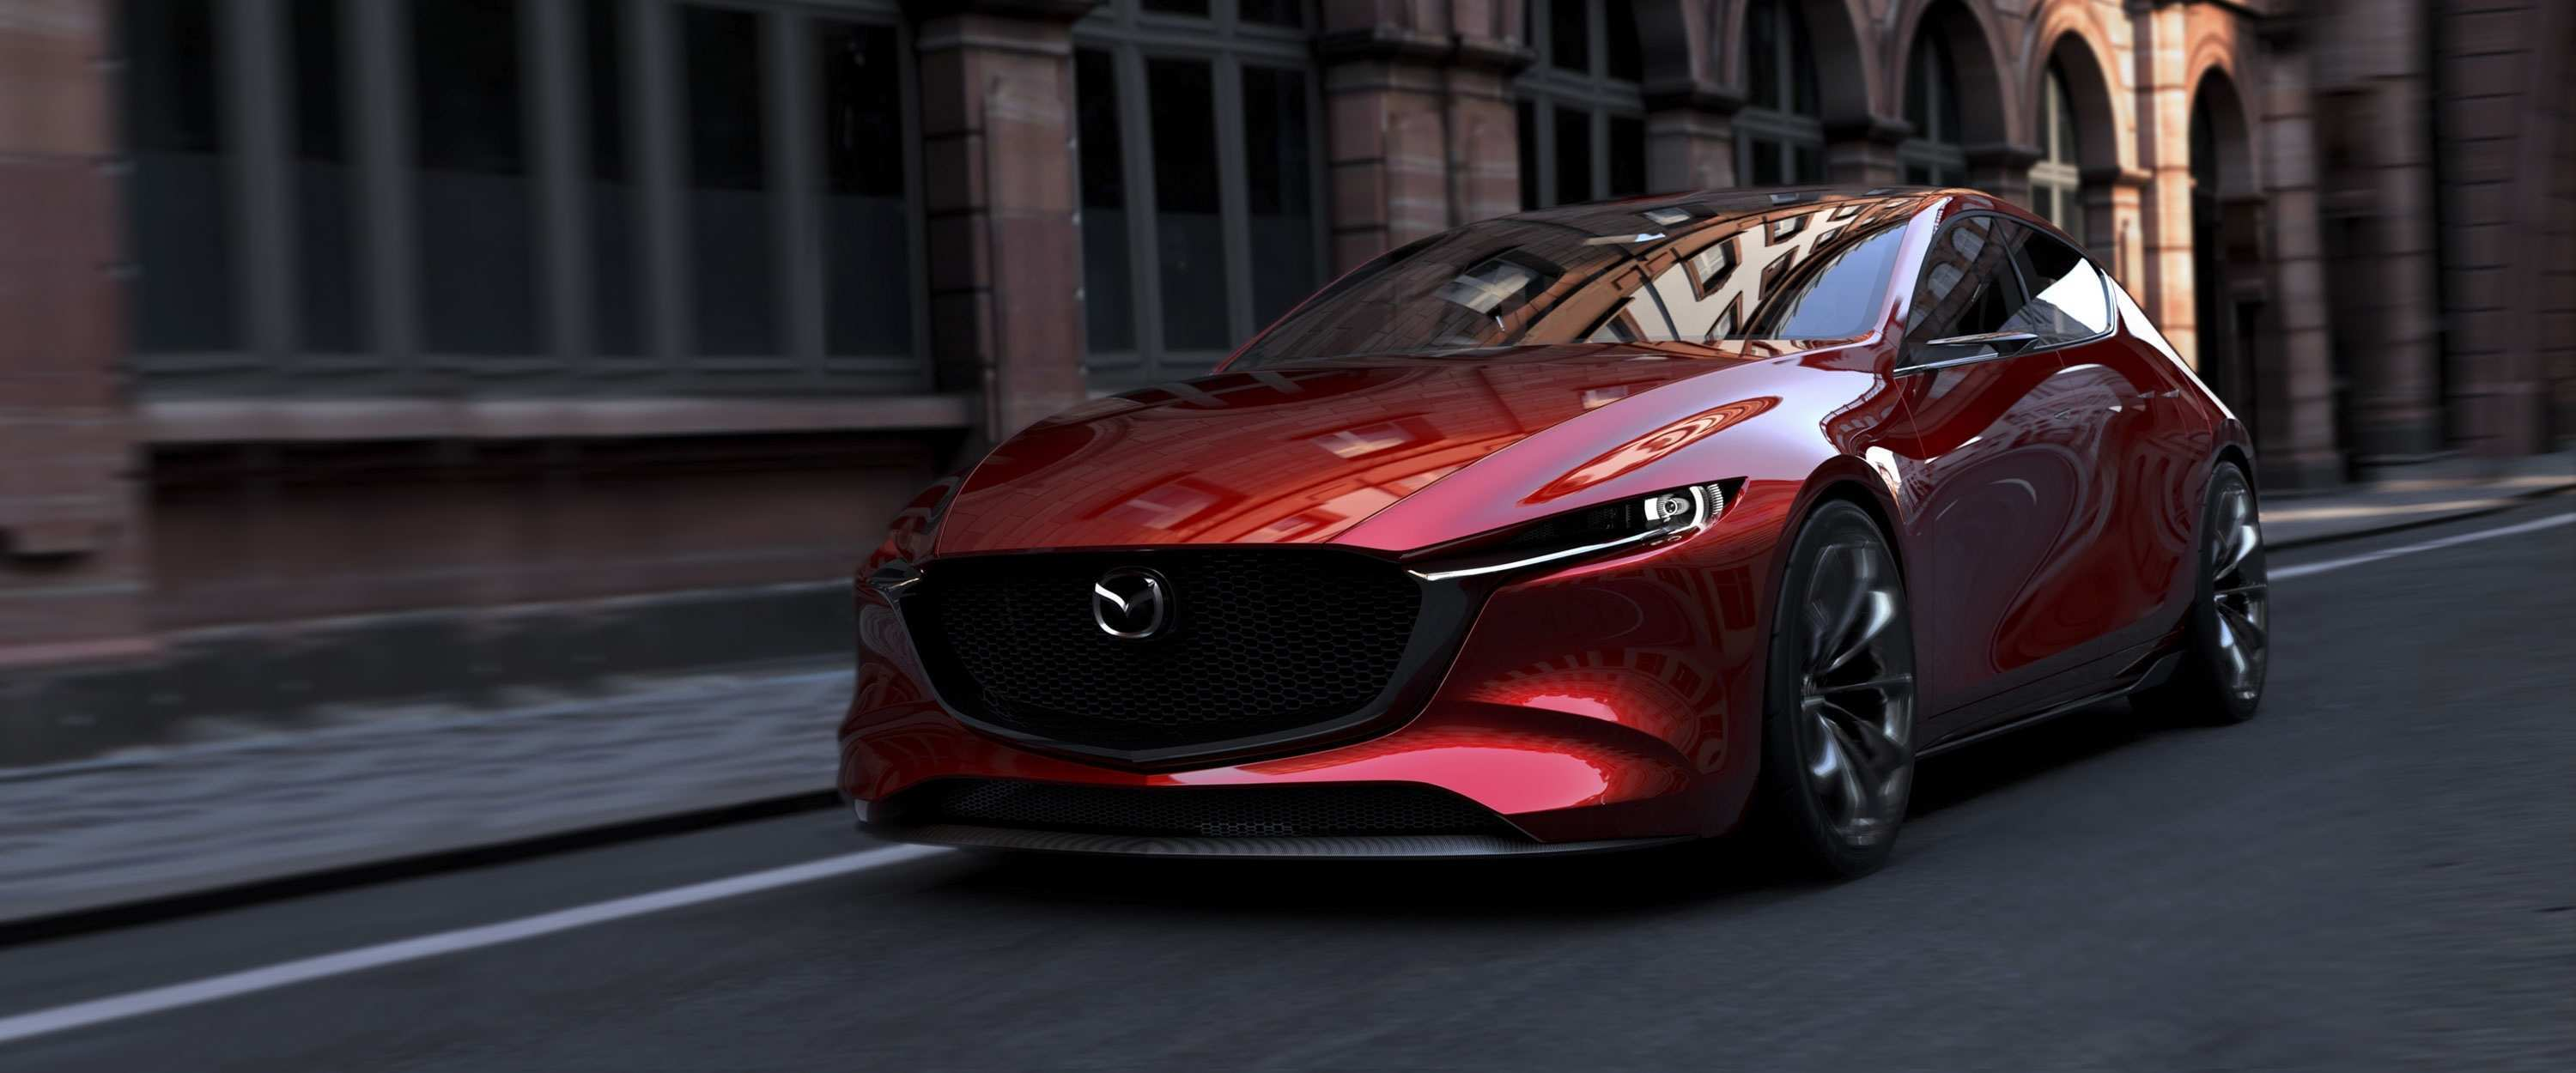 39 The Best Mazda 6 Wagon 2020 Price and Review